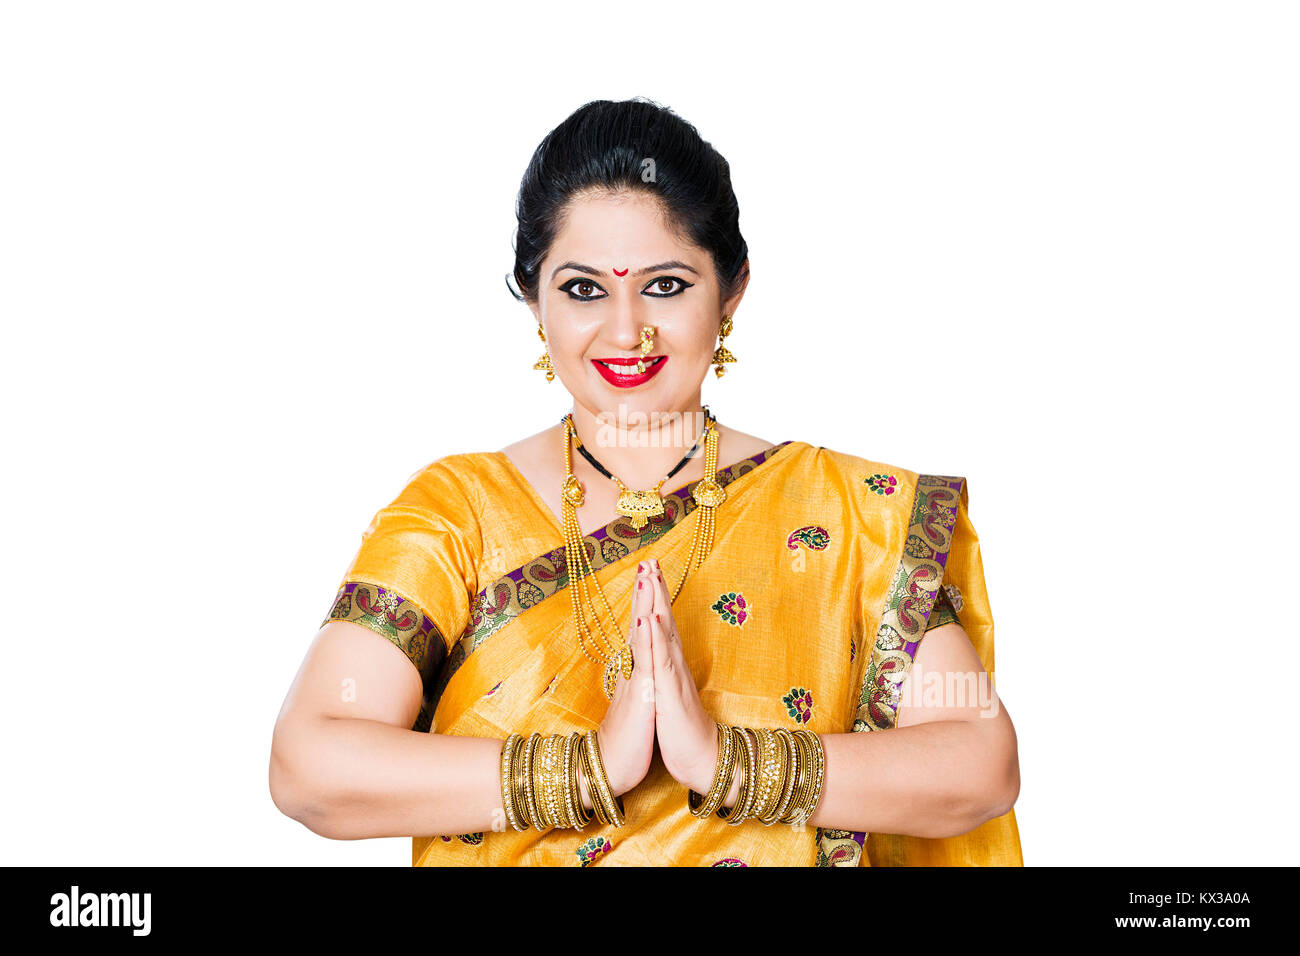 Indian Traditional Marathi Housewife Woman Joined Hands Namaste Welcome Stock Photo